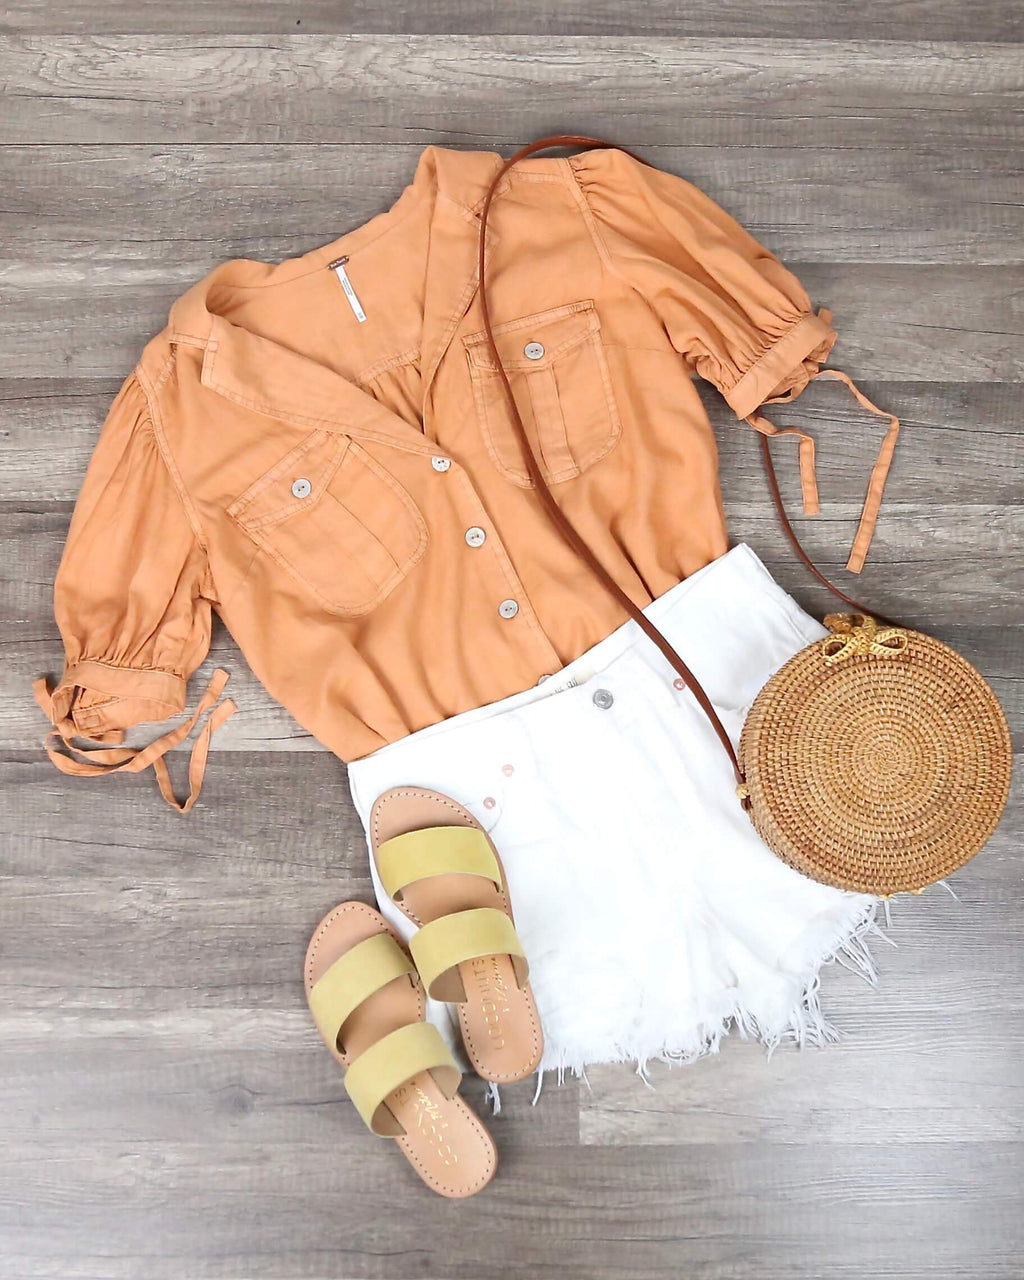 Free People - Safari Babe Woven Top in Peach